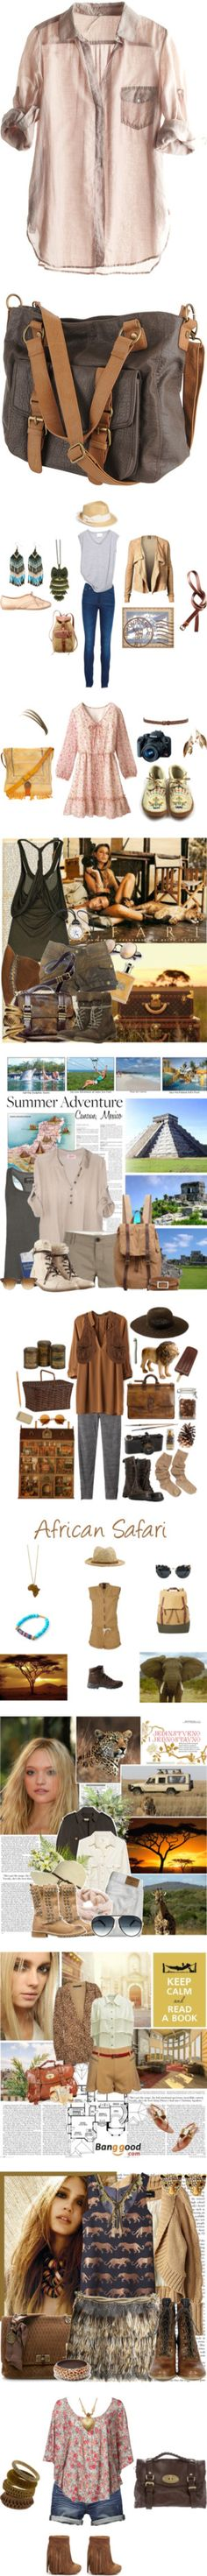 """""""Archaeology"""" by duvee75 ❤ liked on Polyvore"""